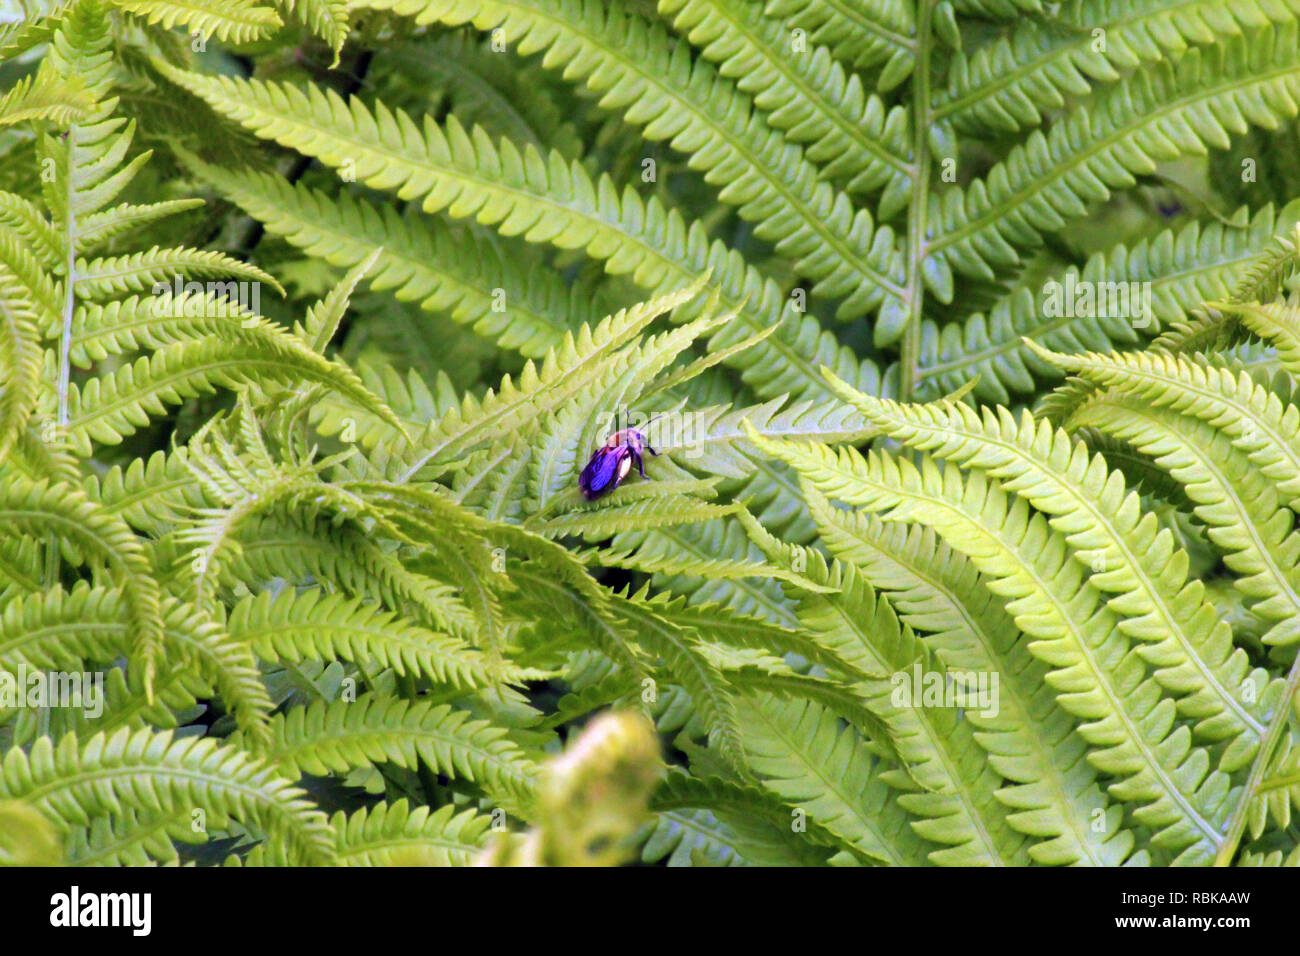 A Carpenter bee resting on an Ostrich Fern leaf - Stock Image